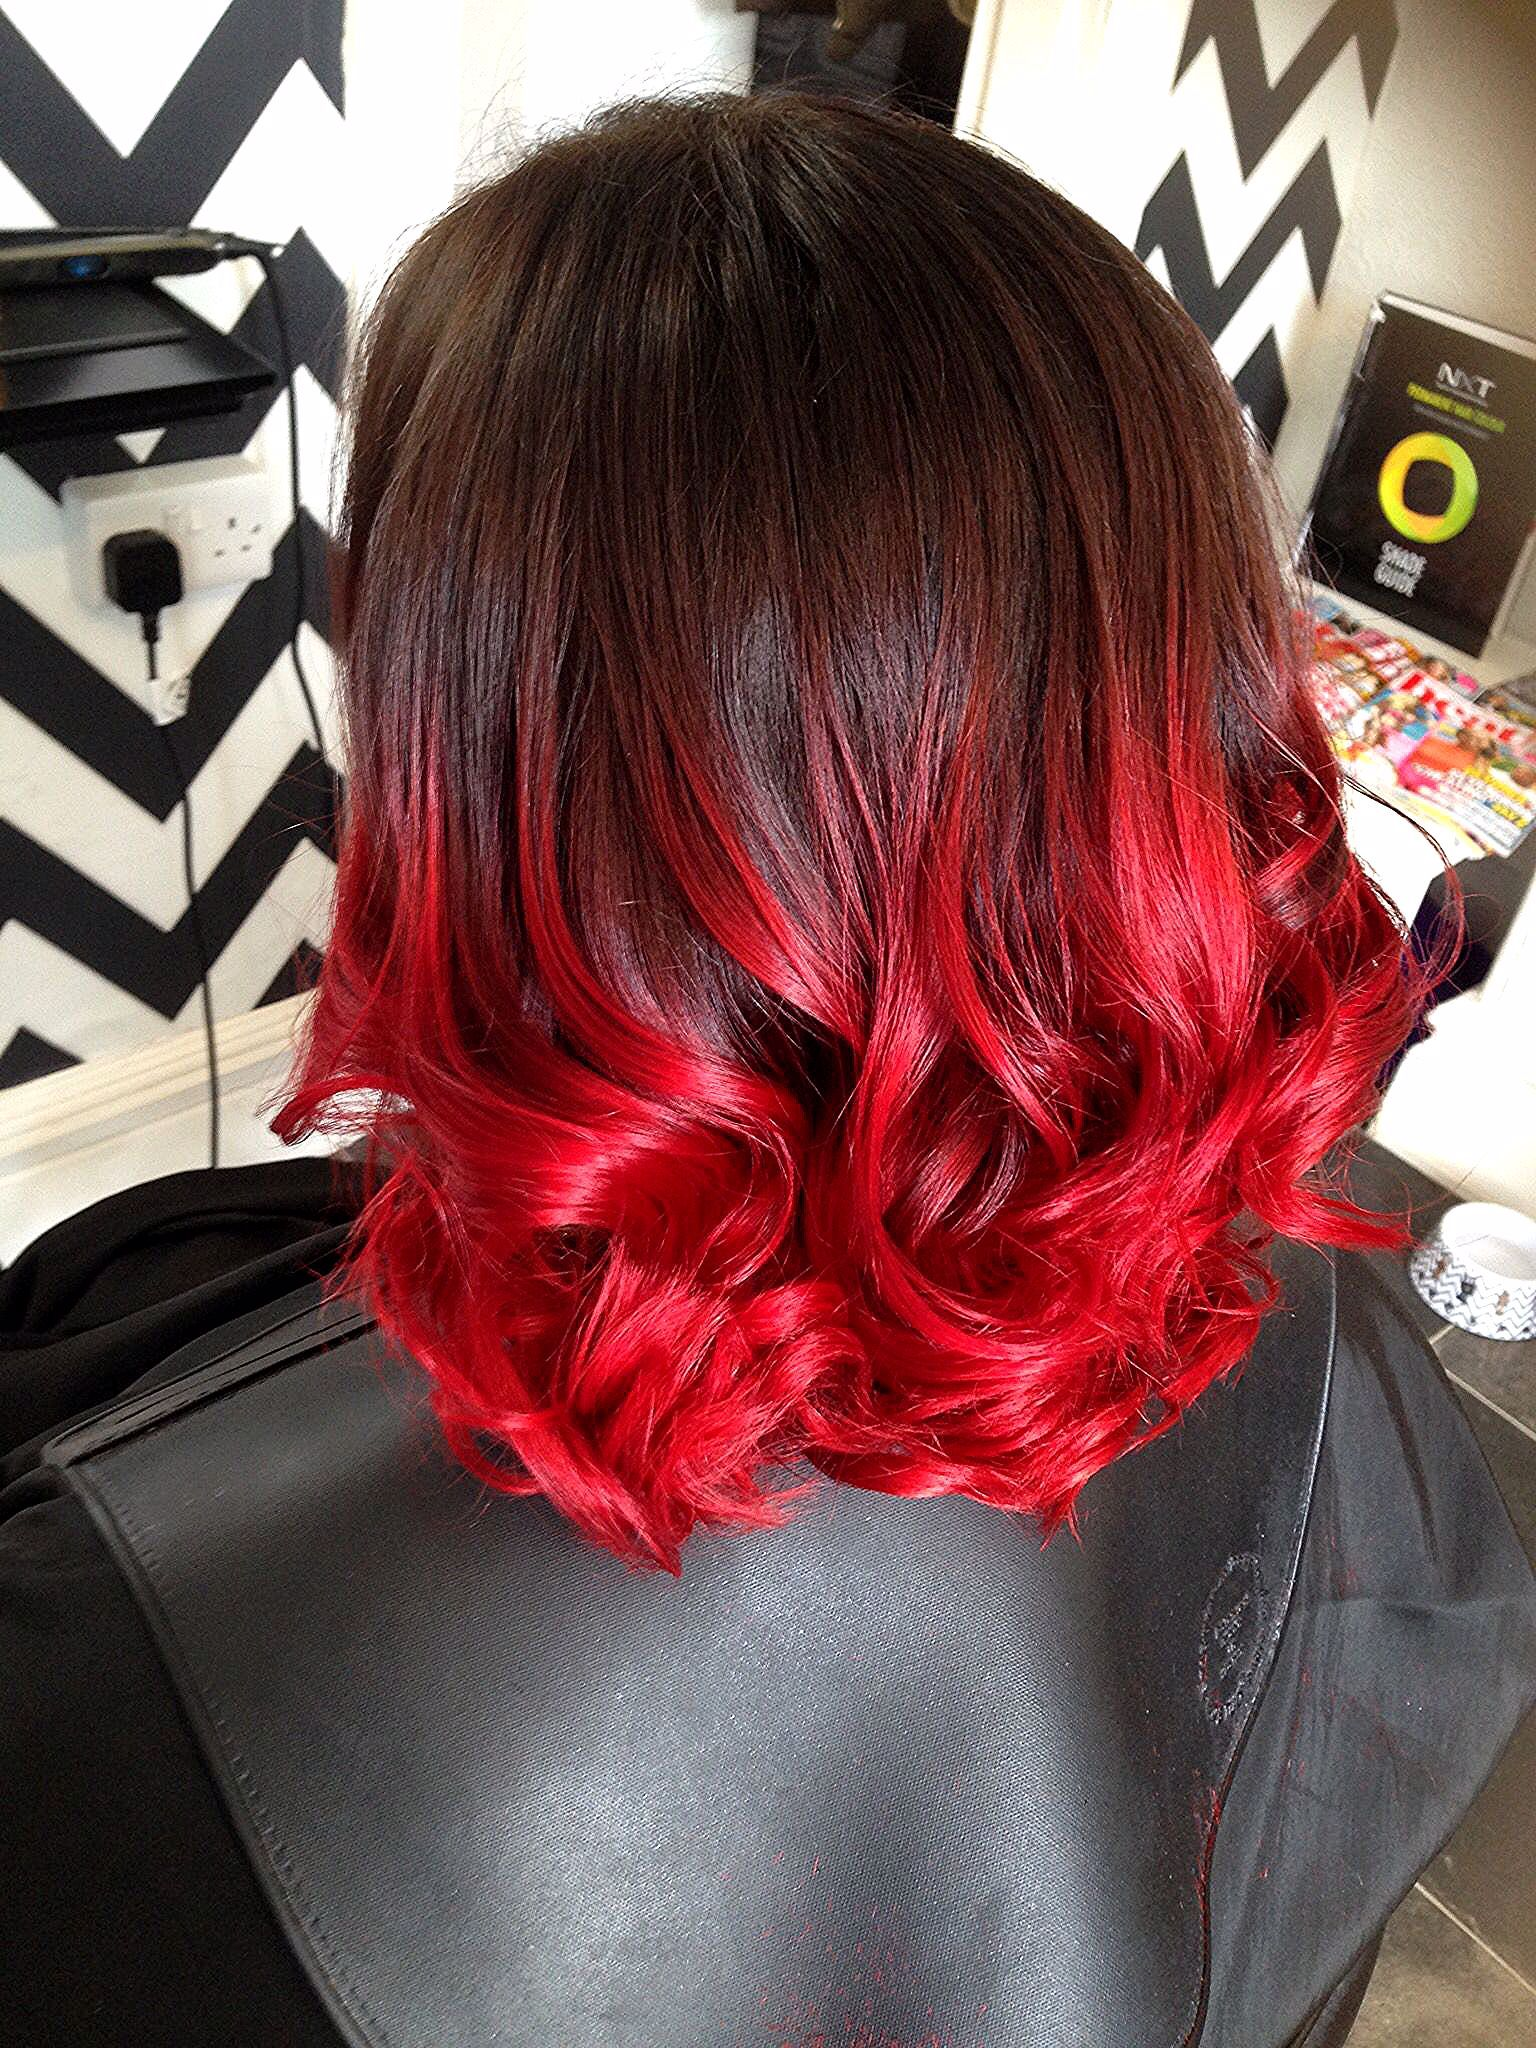 Pin On Girls With Red Hair